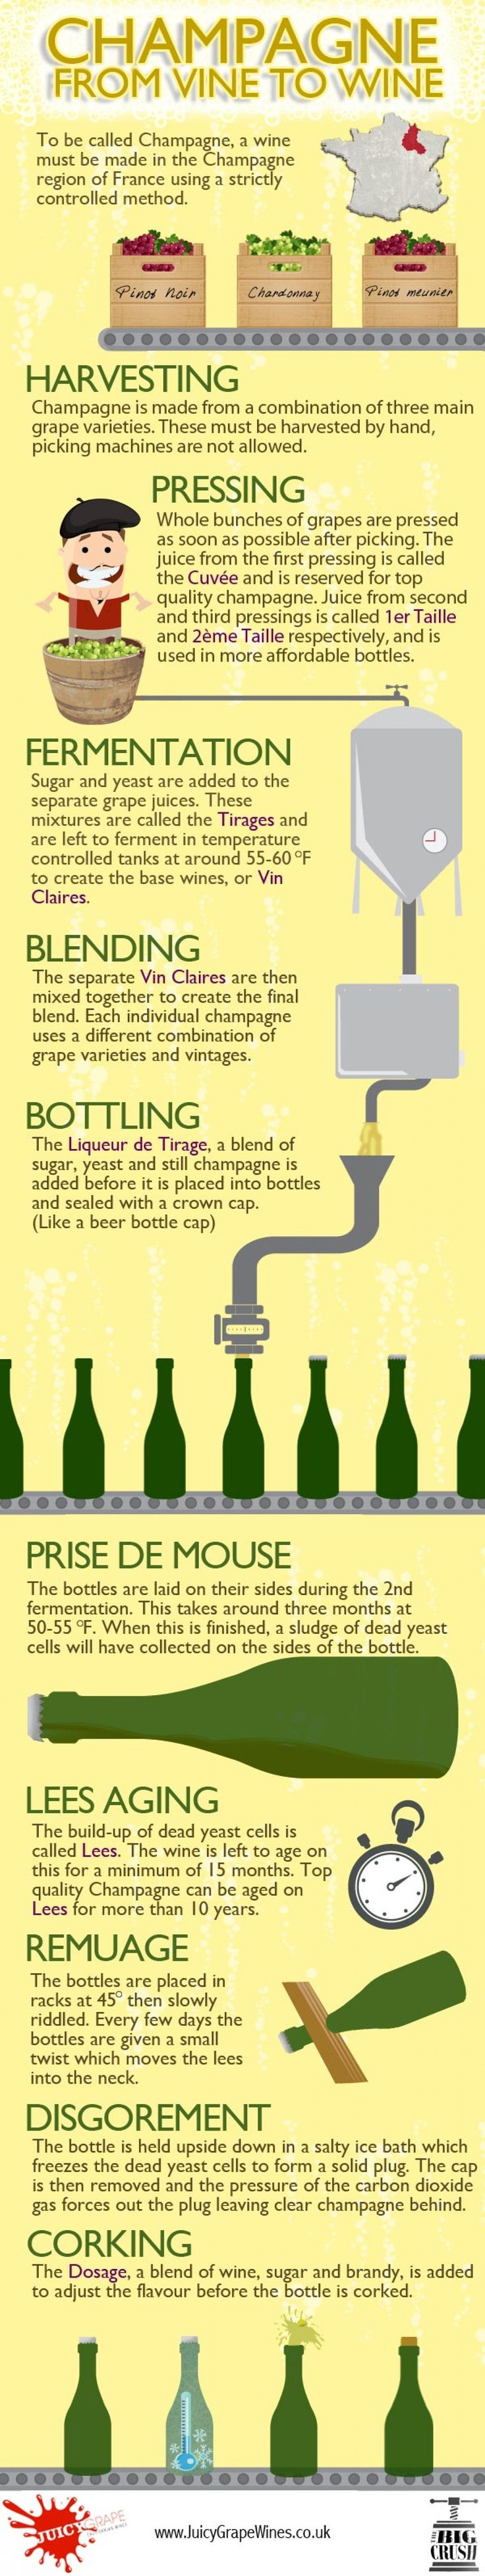 "Champagne - From Vine To Wine Infographic www.LiquorList.com ""The Marketplace for Adults with Taste!"" @LiquorListcom #LiquorList.com"